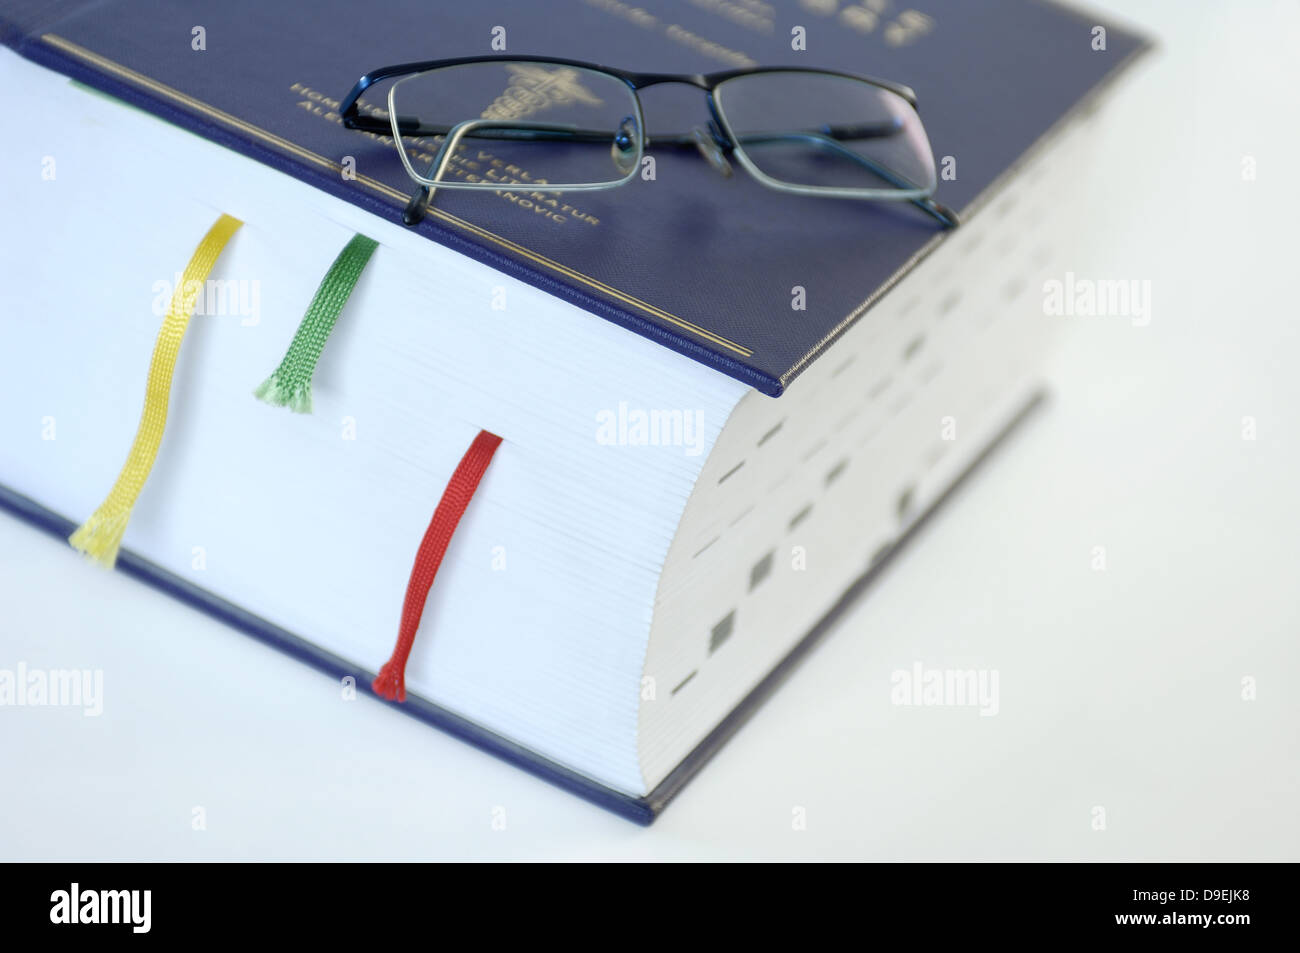 more than 3100 sides strong medical encyclopaedia. - Stock Image